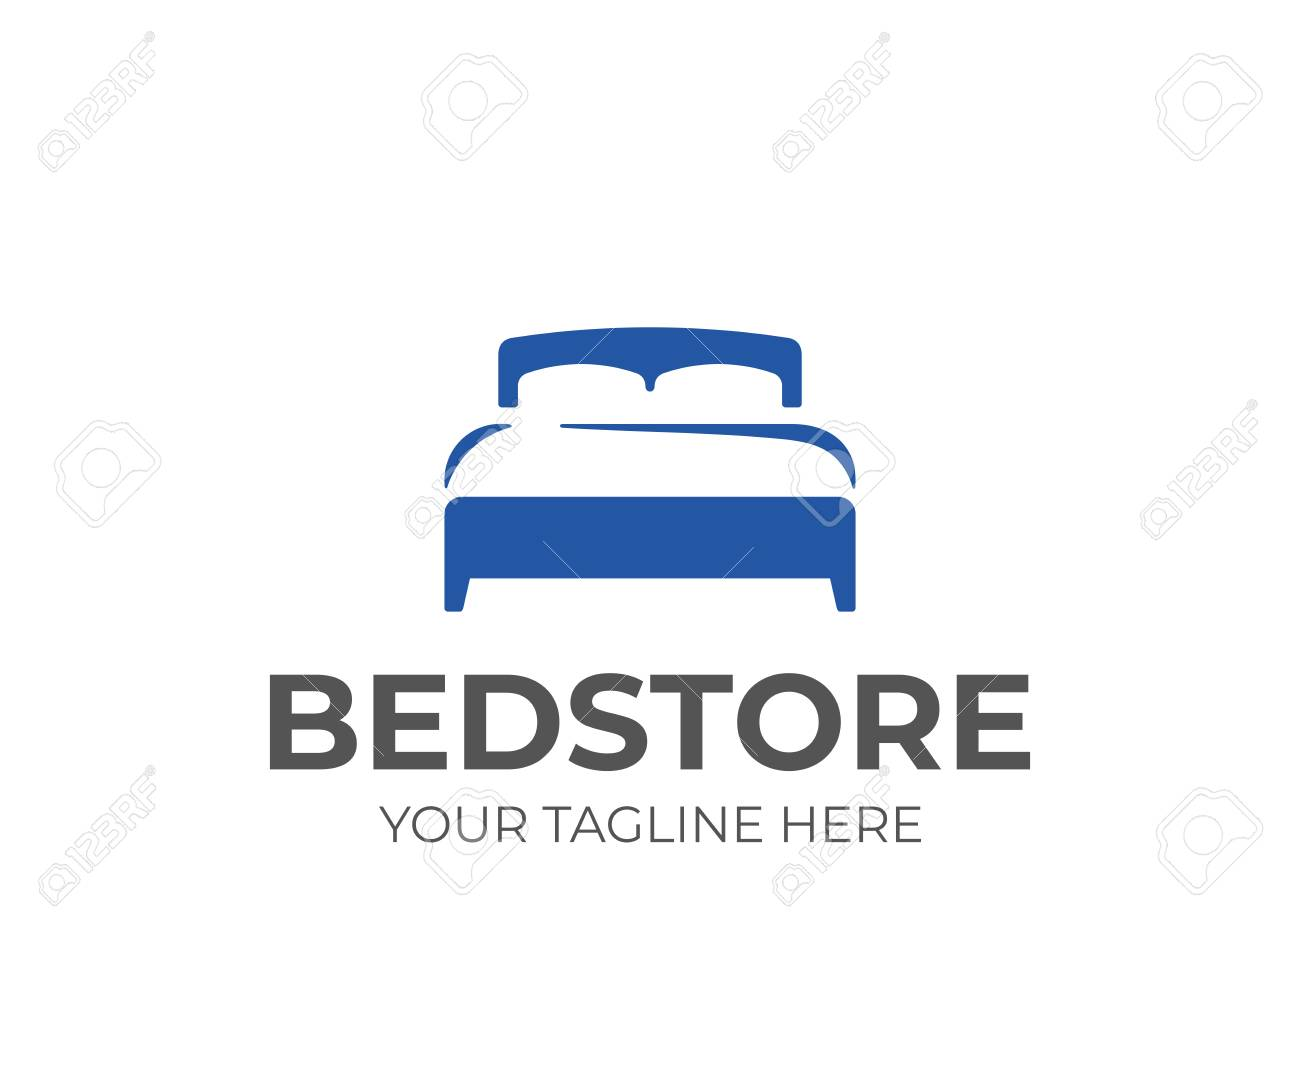 Double Bed With Pillow And Duvet Logo Design Bedroom Furniture Royalty Free Cliparts Vectors And Stock Illustration Image 110278078